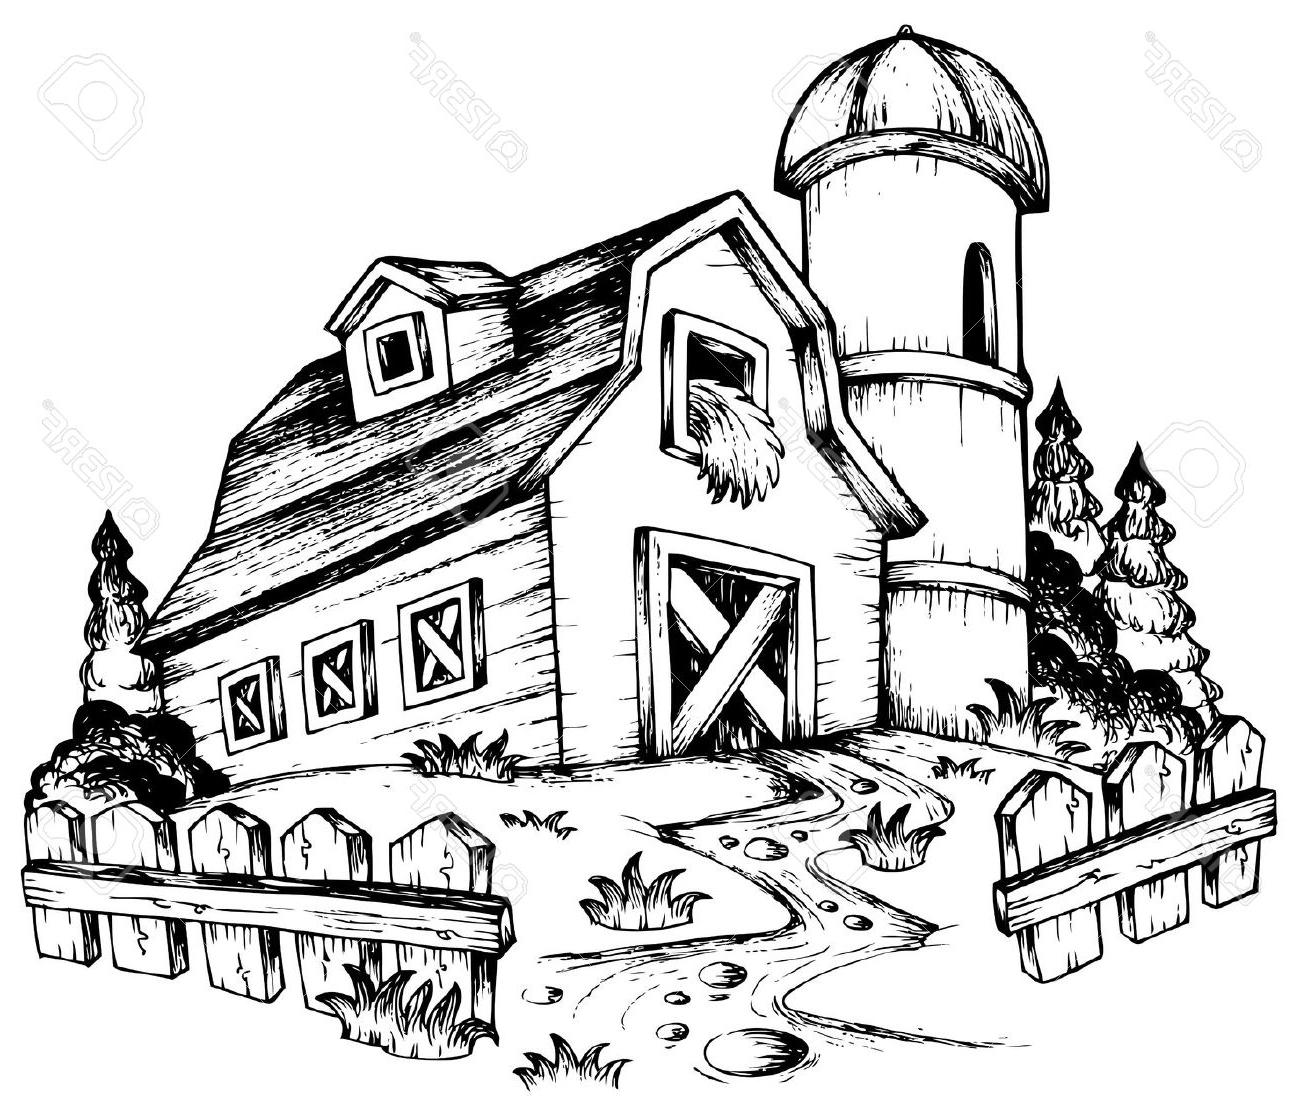 barn clipart black and white free download best barn